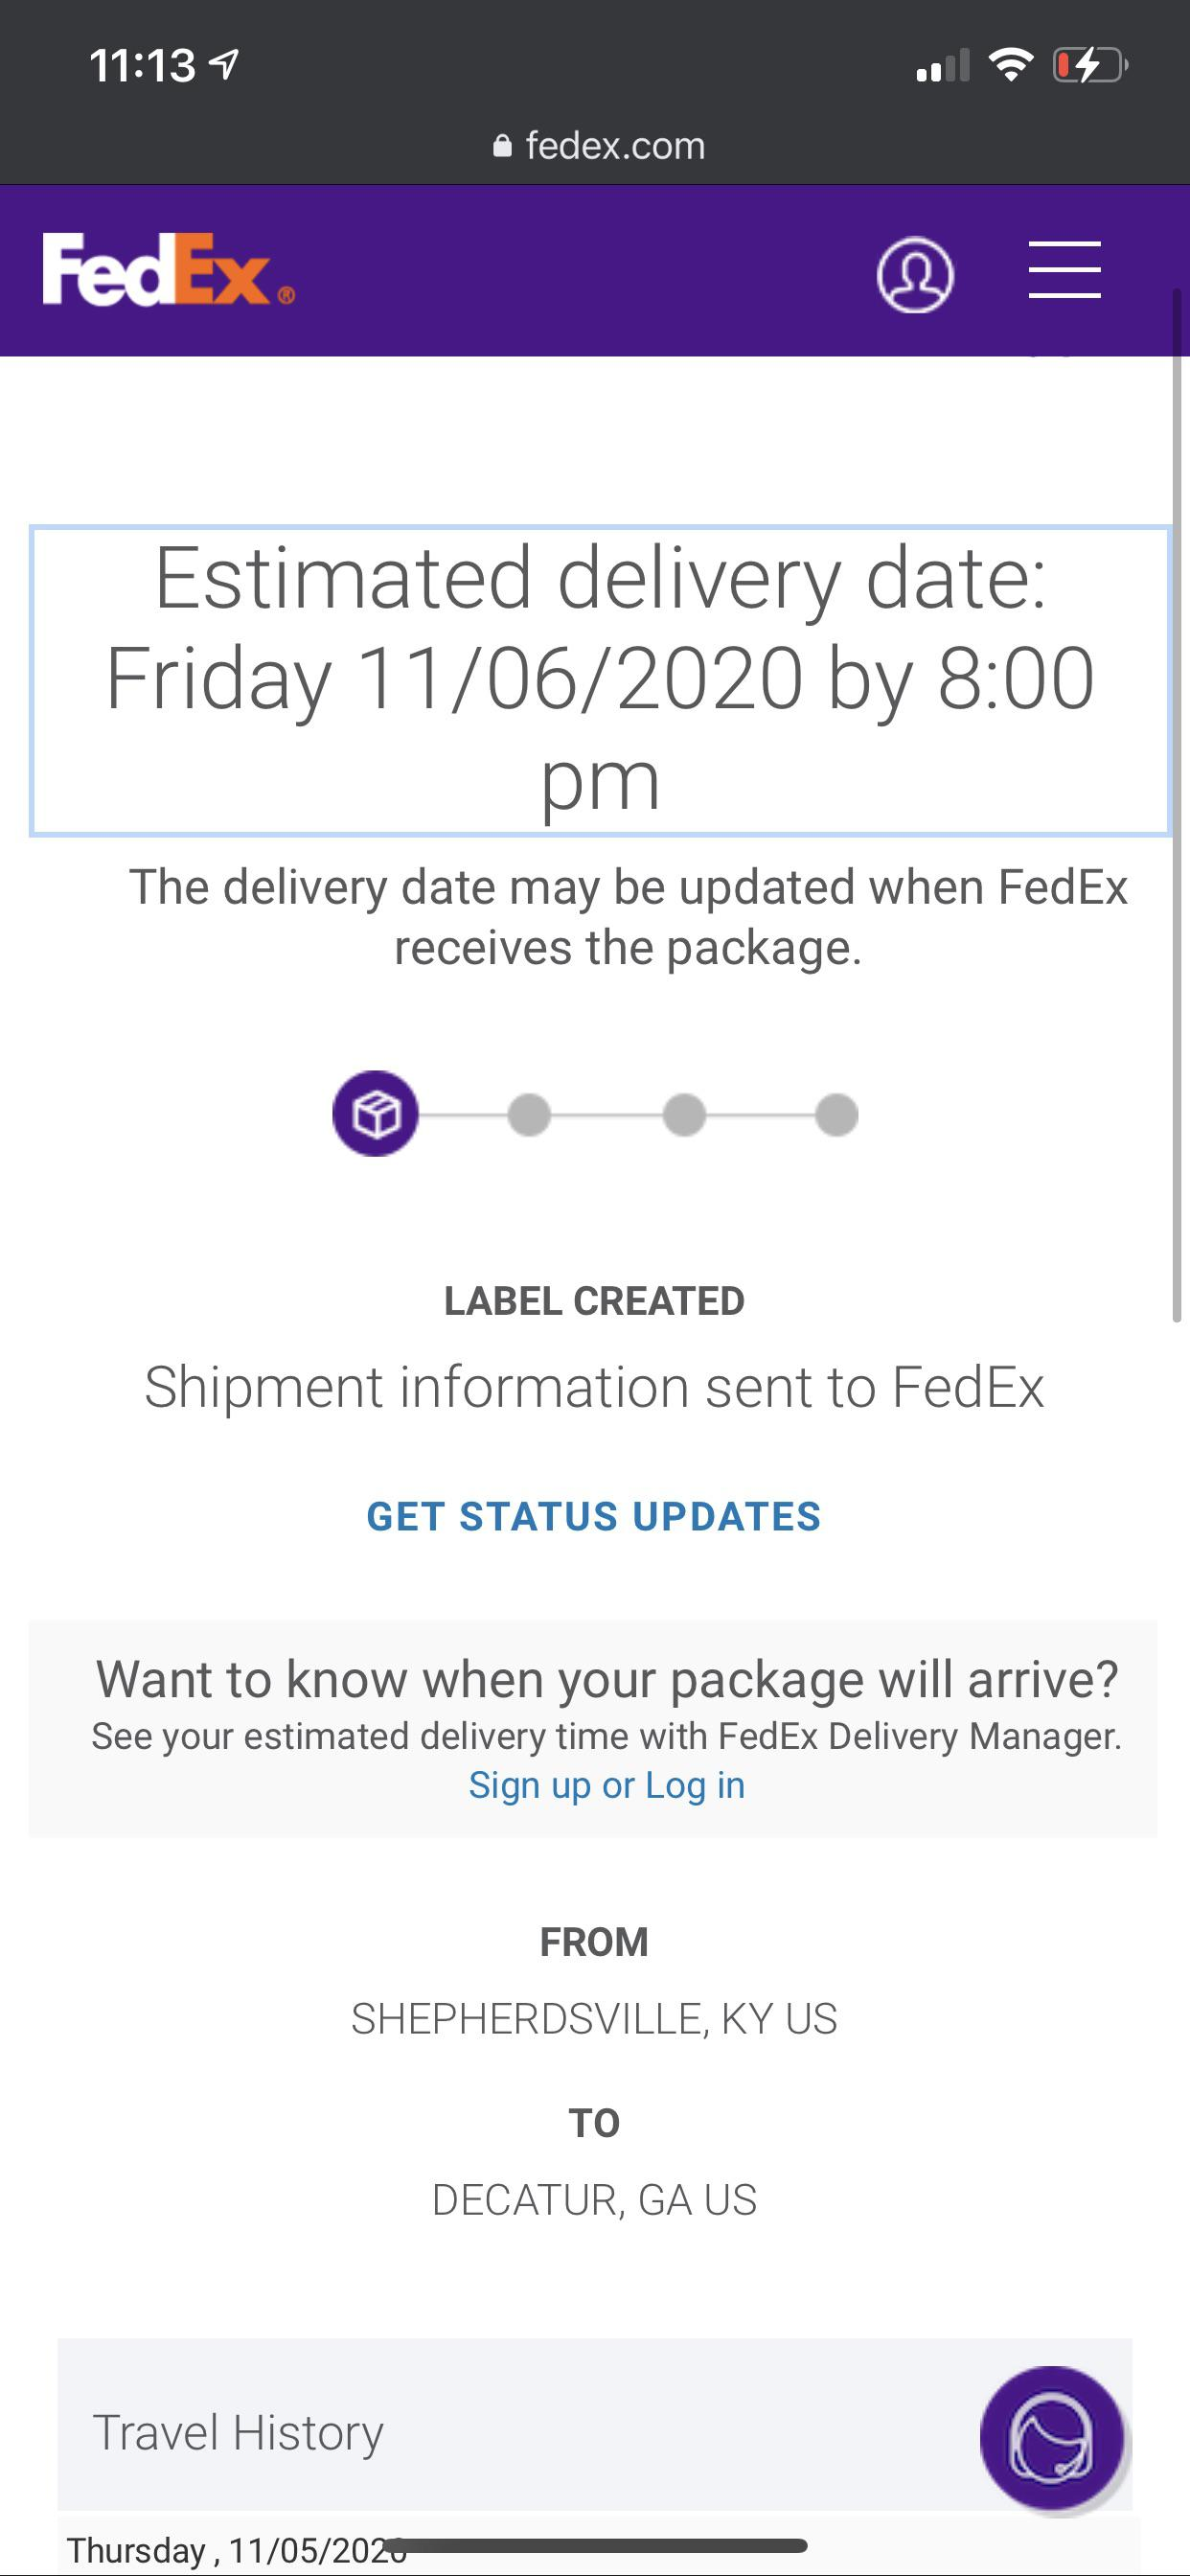 Fedex Label Created But Not Shipped : fedex, label, created, shipped, GameStop, Telling, Package, Fedex, Saying, Never, Received, Chances, Actually, Today, FedEx